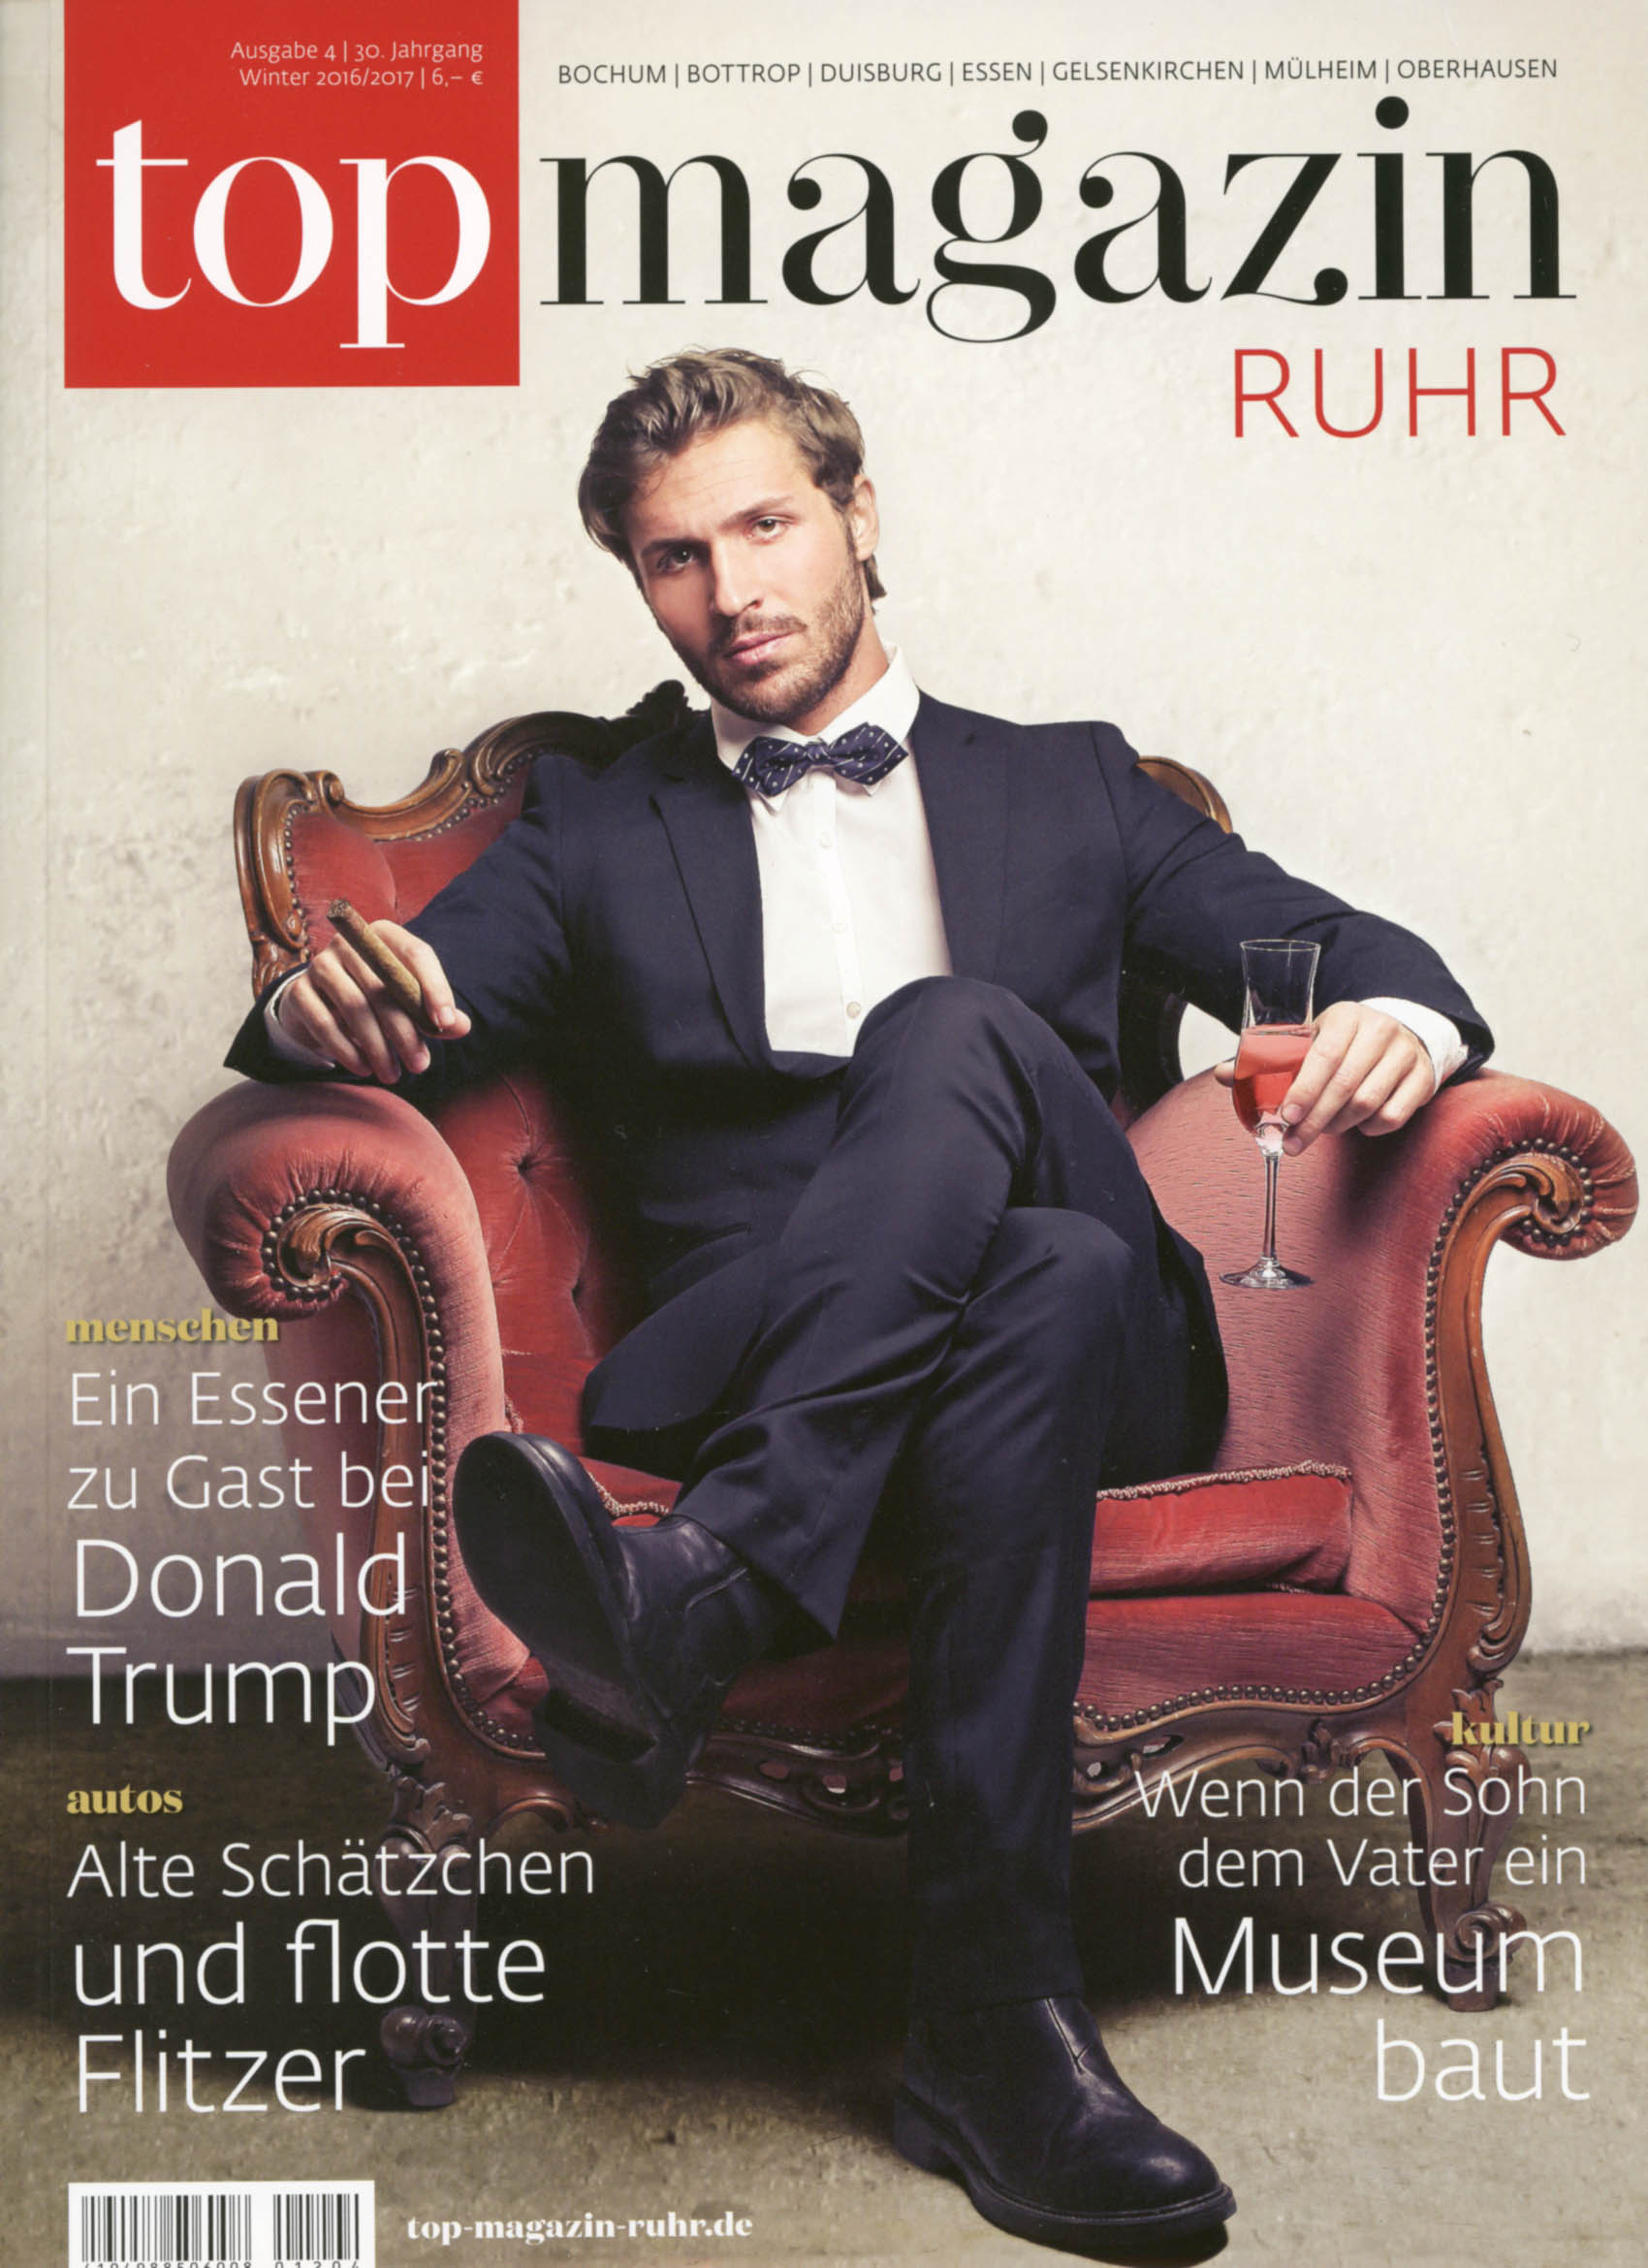 Top Magazine Ruhr